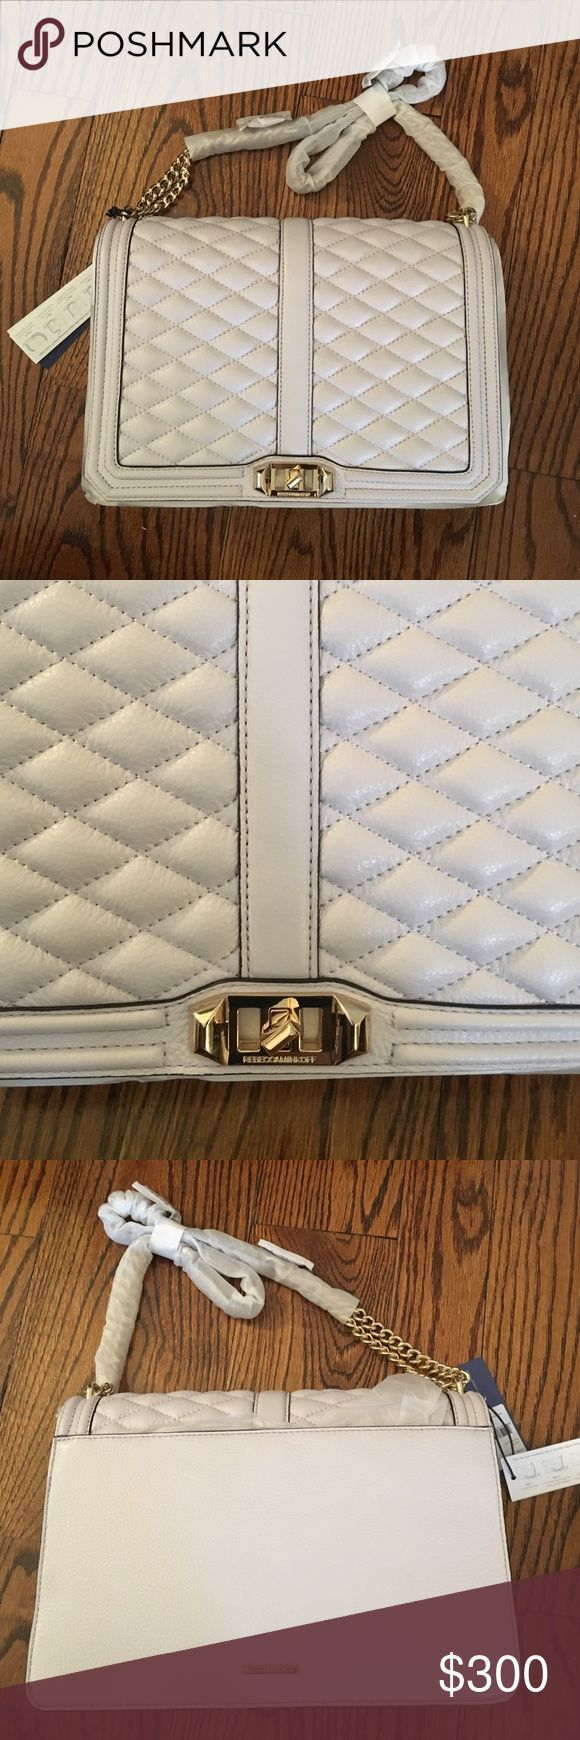 Rebecca Minkoff Quilted cross body Brand new - never used. Light lilac almost white color Rebecca Minkoff Bags Crossbody Bags